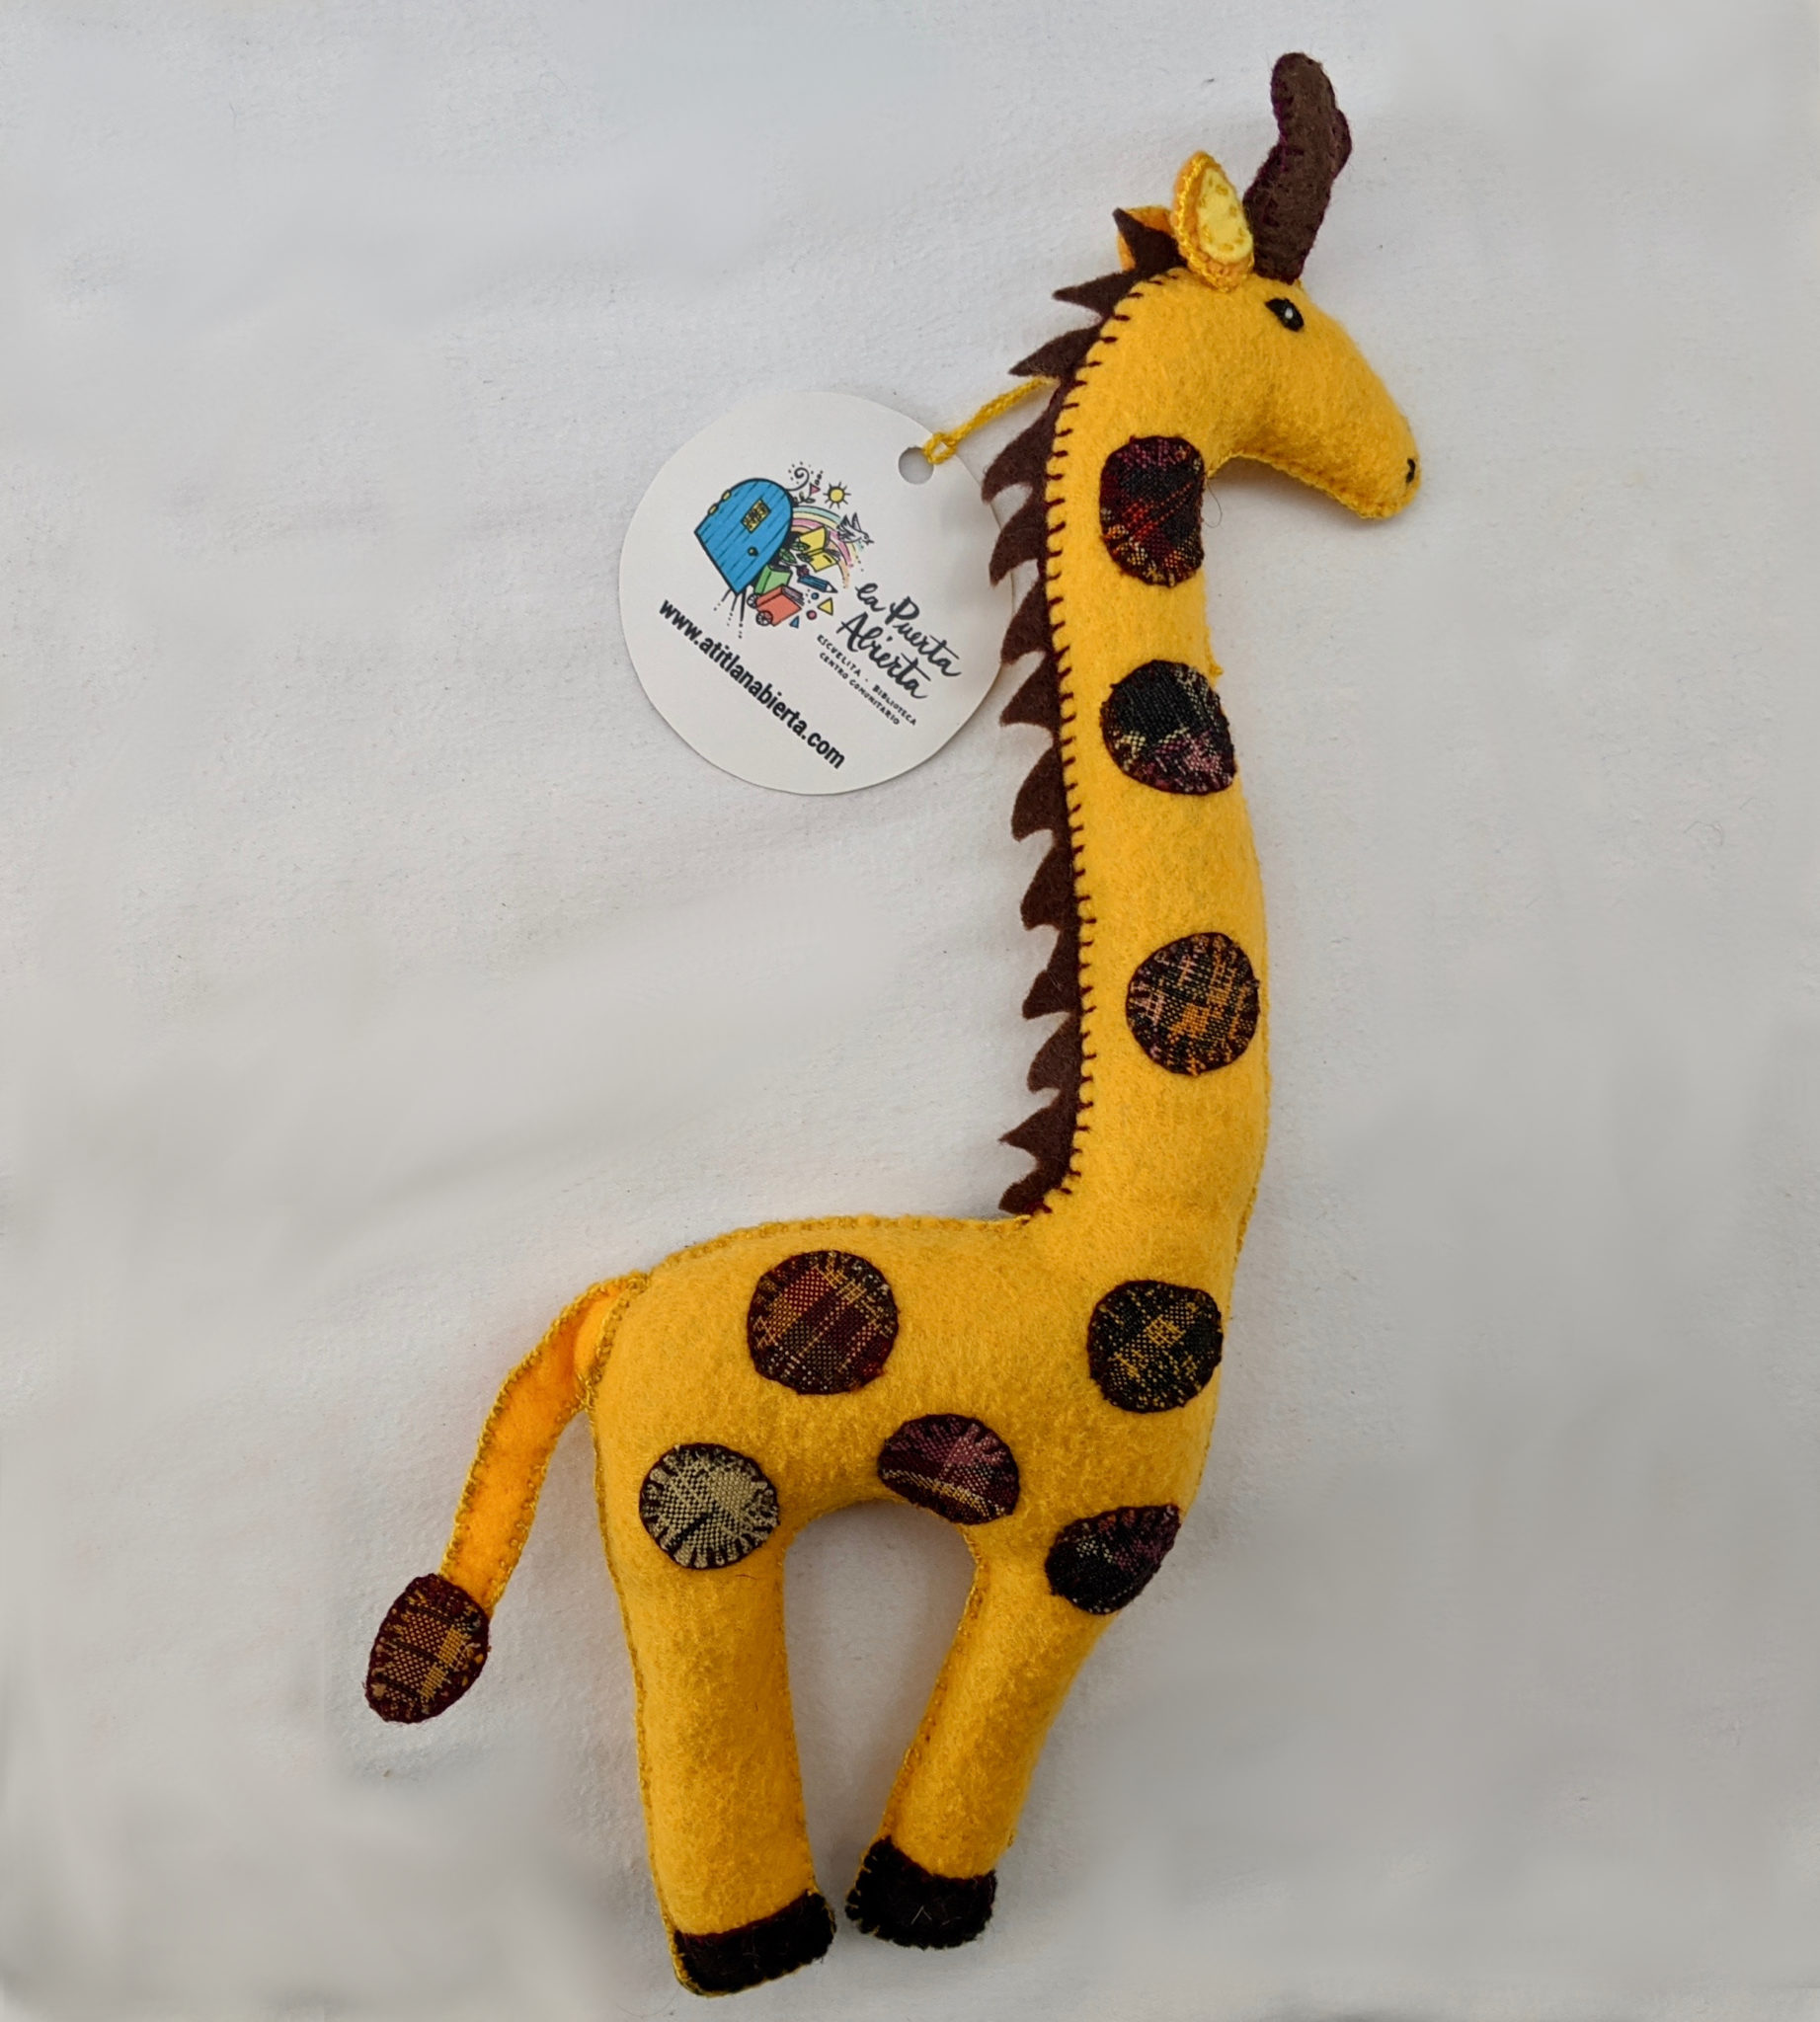 Giraffe Ornament - Large - Felt and Repurposed Traditional Fabric